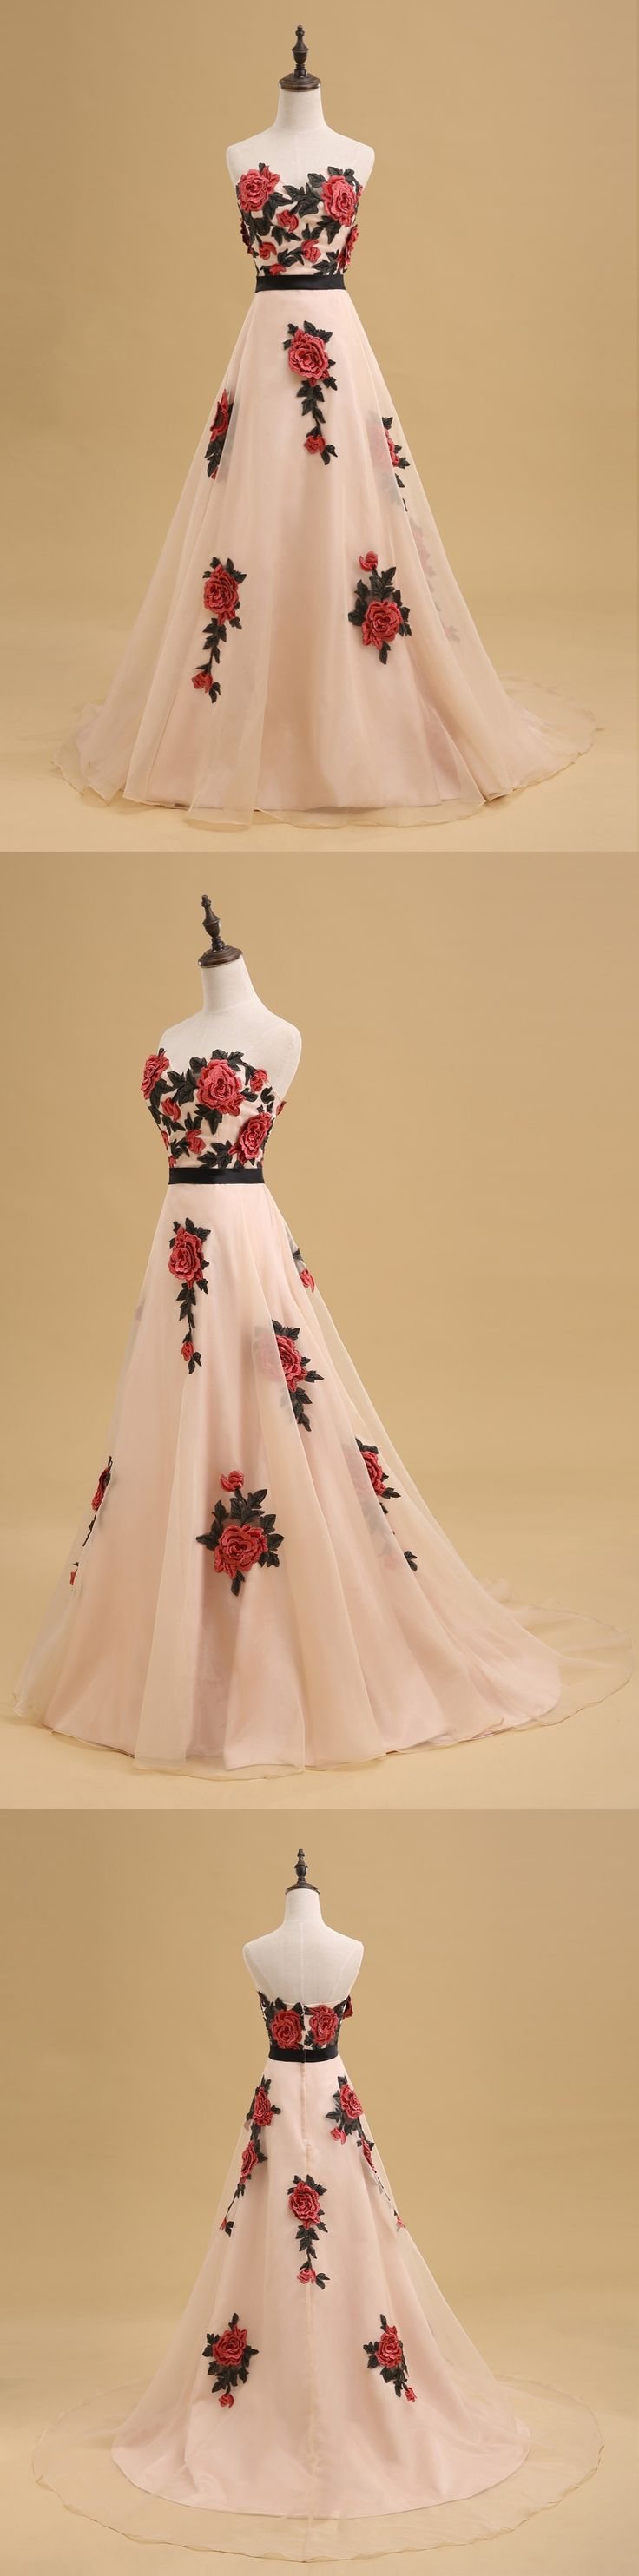 prom dresses long,prom dresses for teens,prom dresses boho,prom dresses cheap,junior prom dresses,beautiful prom dresses,prom dresses flowy,prom dresses 2018,gorgeous prom dresses,prom dresses unique,prom dresses elegant,prom dresses graduacion,prom dresses classy,prom dresses modest,prom dresses simple,prom dresses strapless,prom dresses a line,prom dresses champagne #annapromdress #prom #promdress #evening #eveningdress #dance #longdress #longpromdress #fashion #style #dress